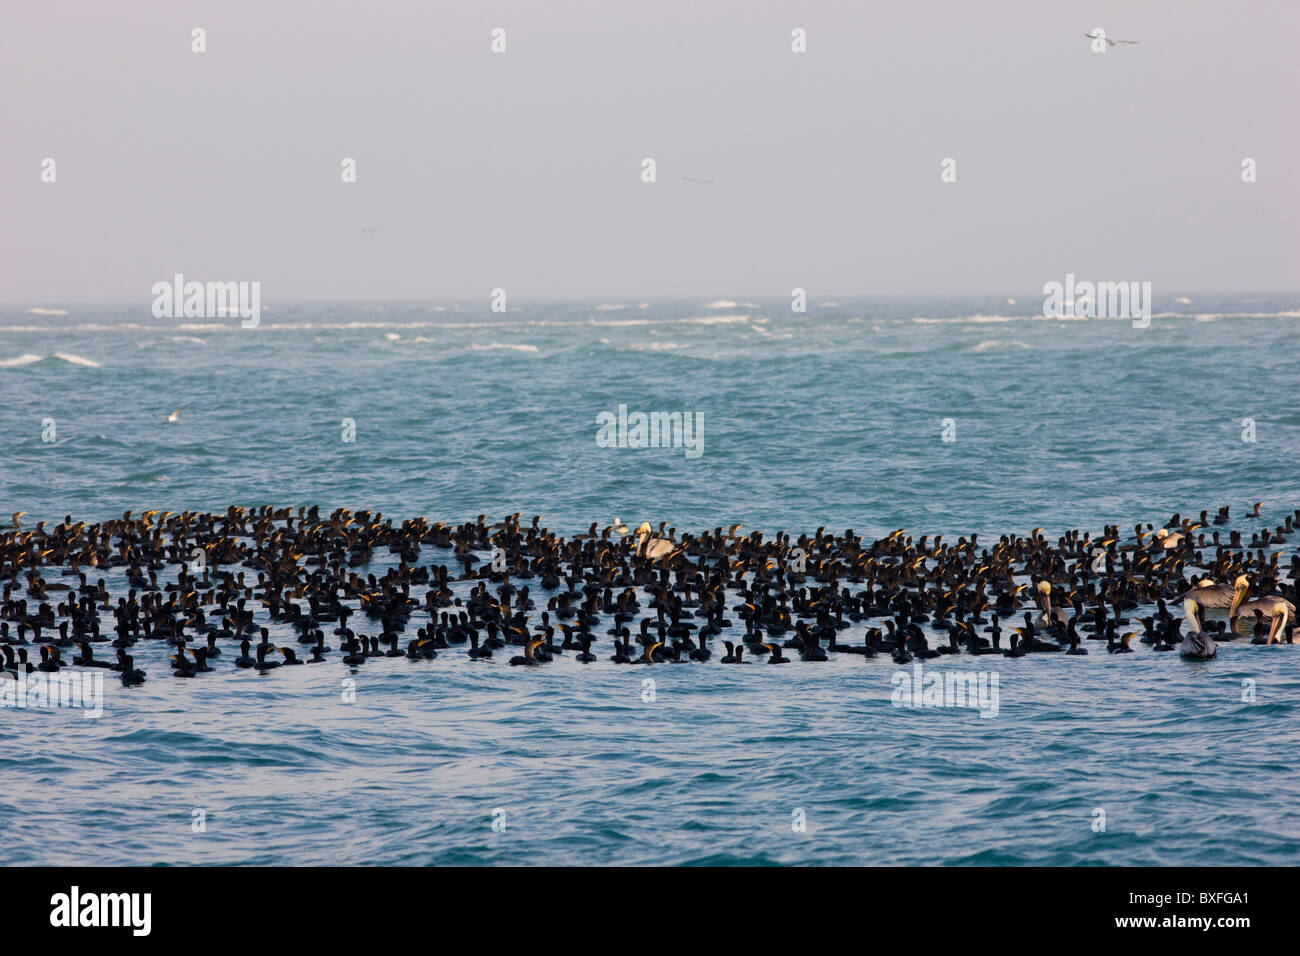 Double-crested Cormorants and Brown Pelicans floating in the Gulf of Mexico by Anna Maria Island, Florida, USA - Stock Image